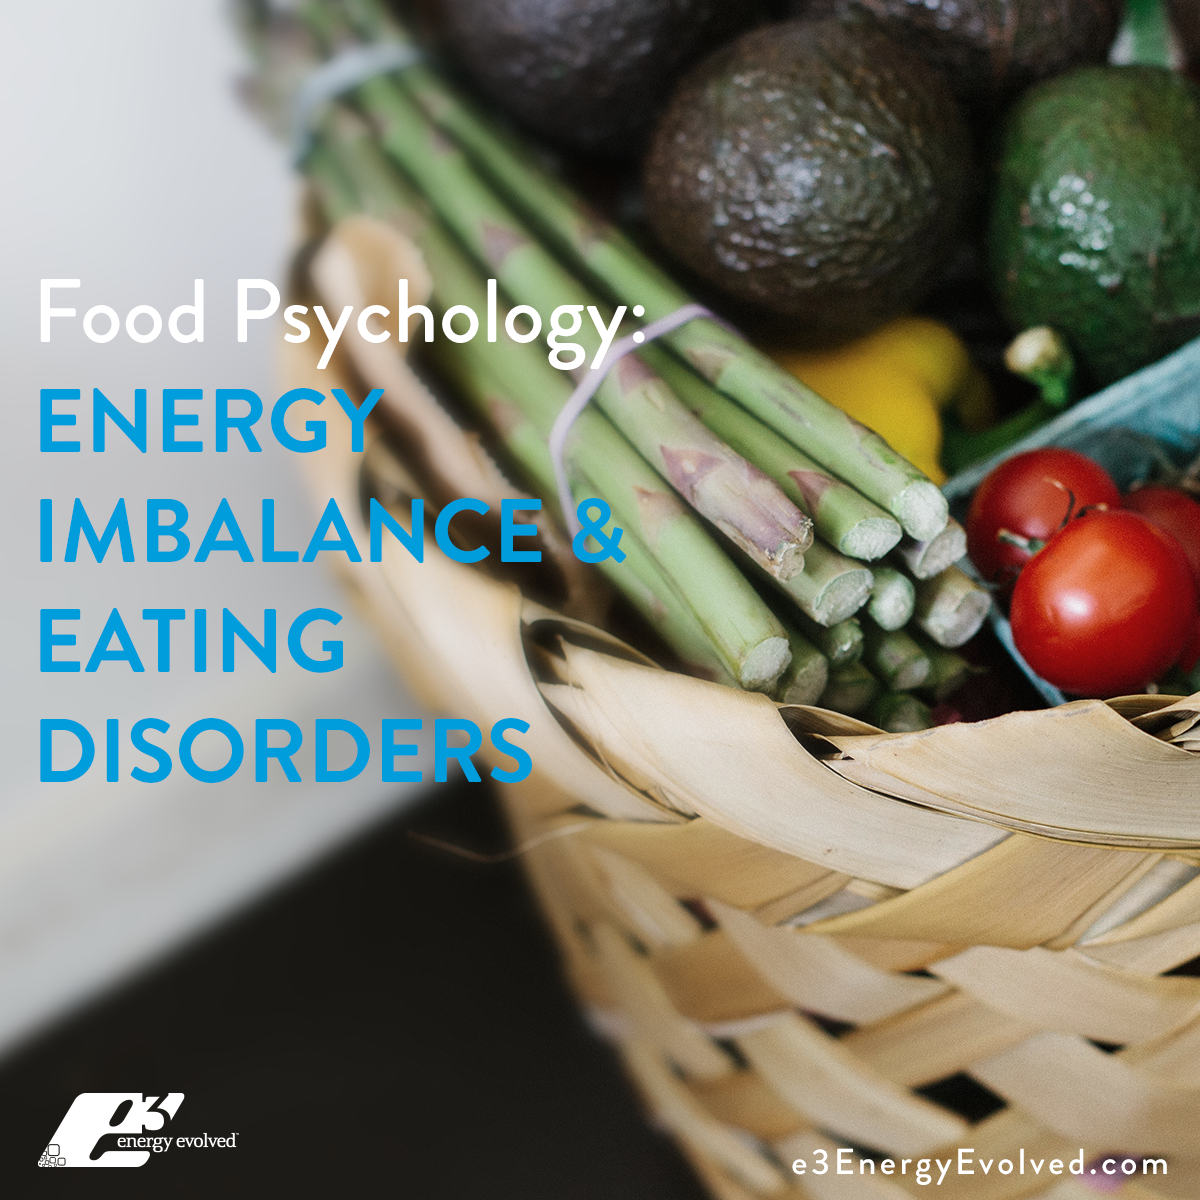 energy, food energetics, eating disorders, bulimia, anorexia, food psychology, energy, food cravings